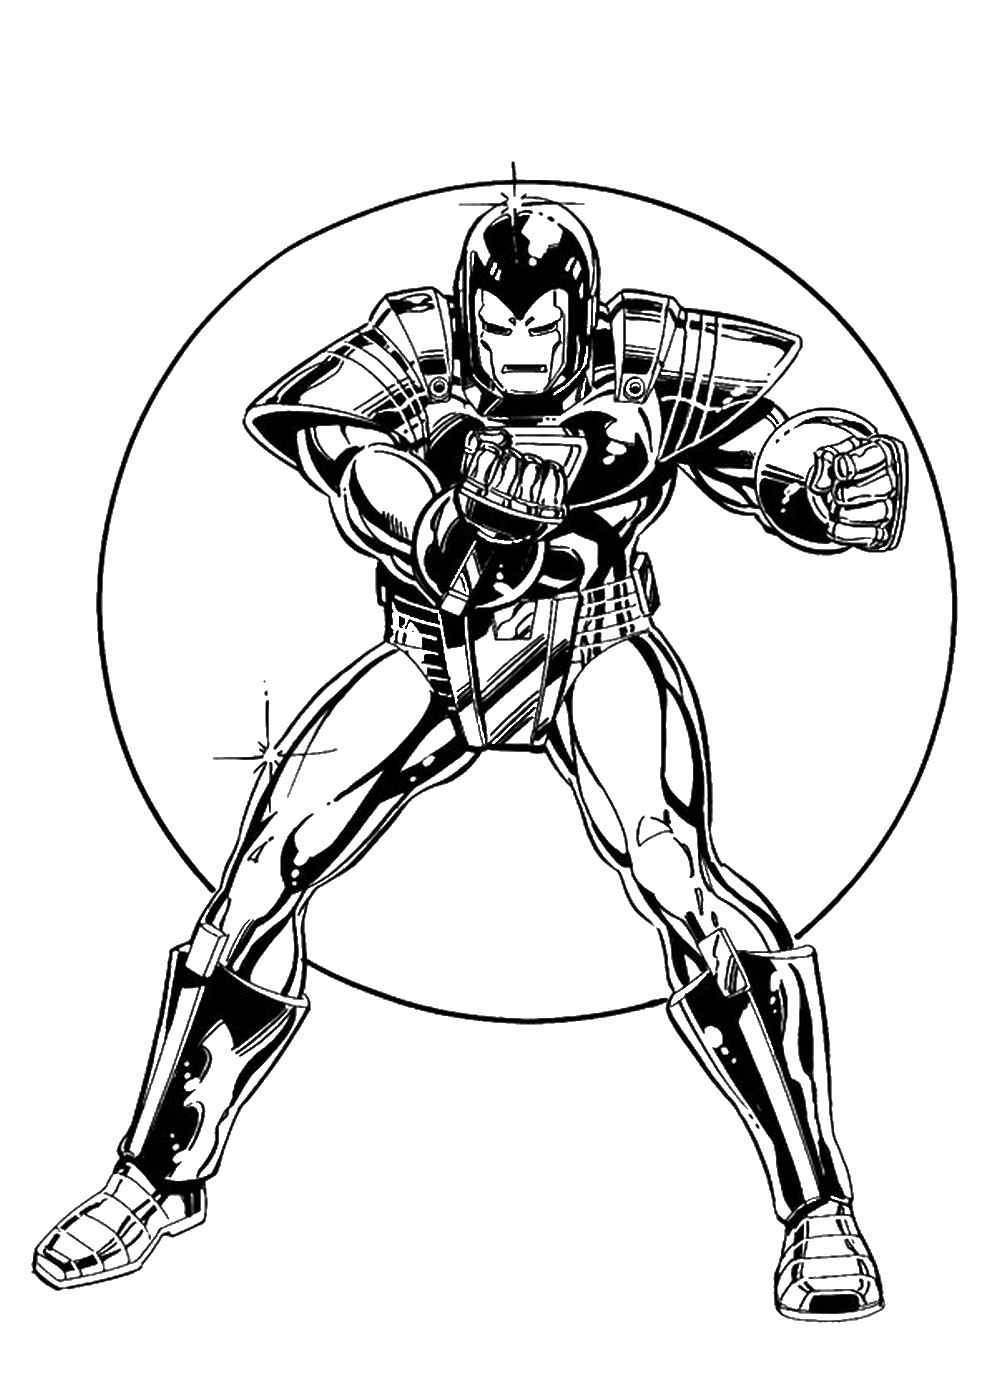 iron man coloring picture iron man coloring pages birthday printable iron man picture coloring